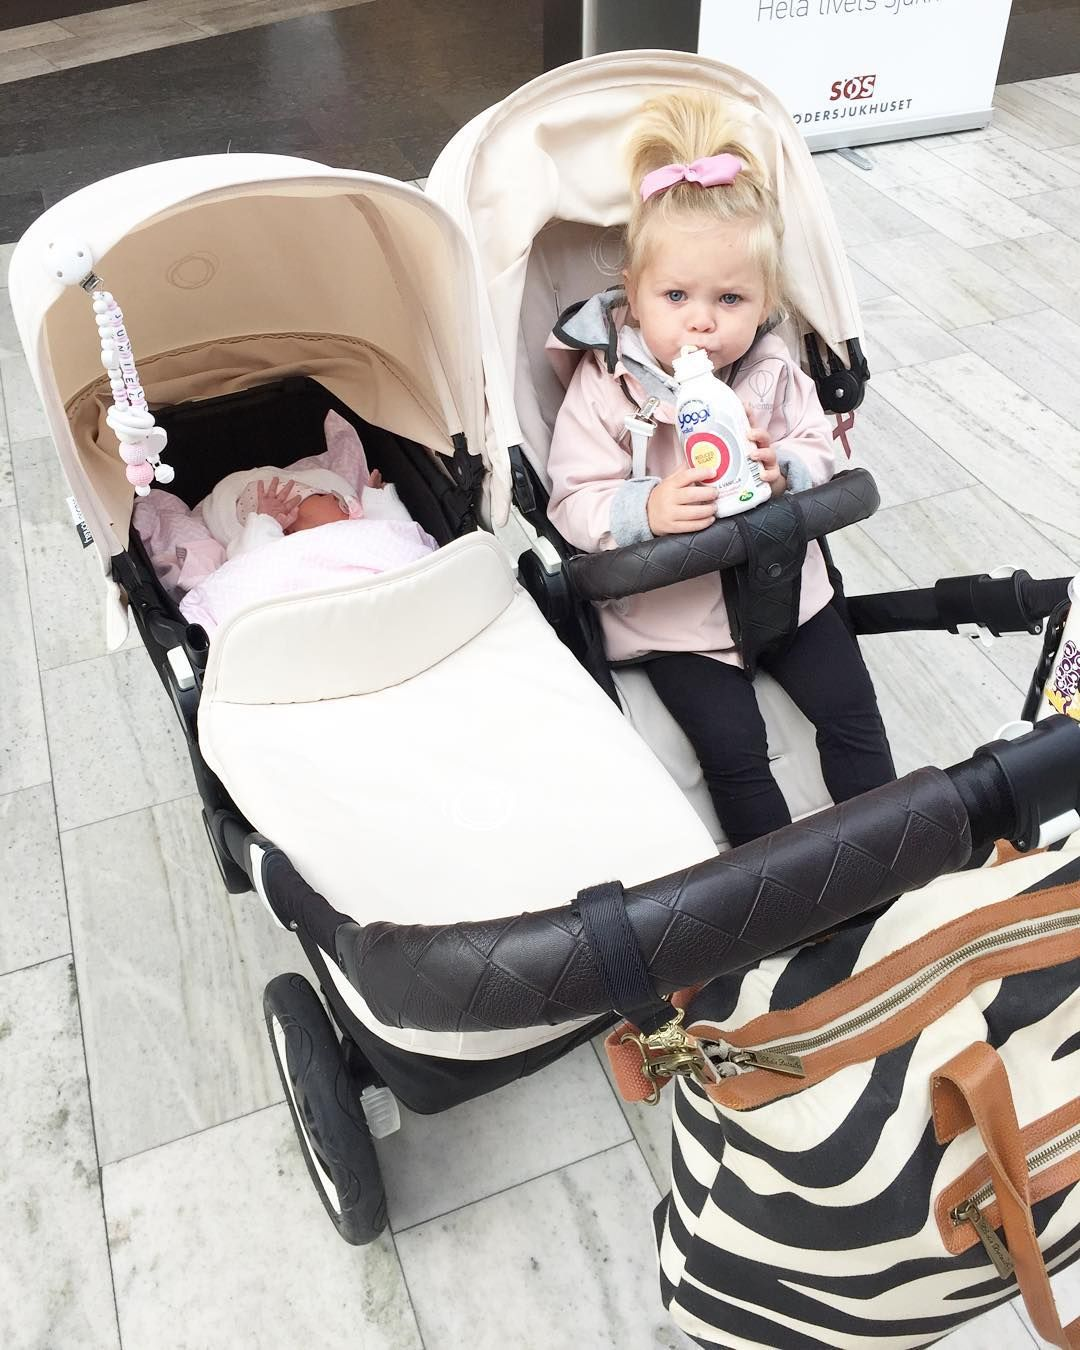 For life on the move. Strollers that get parents out